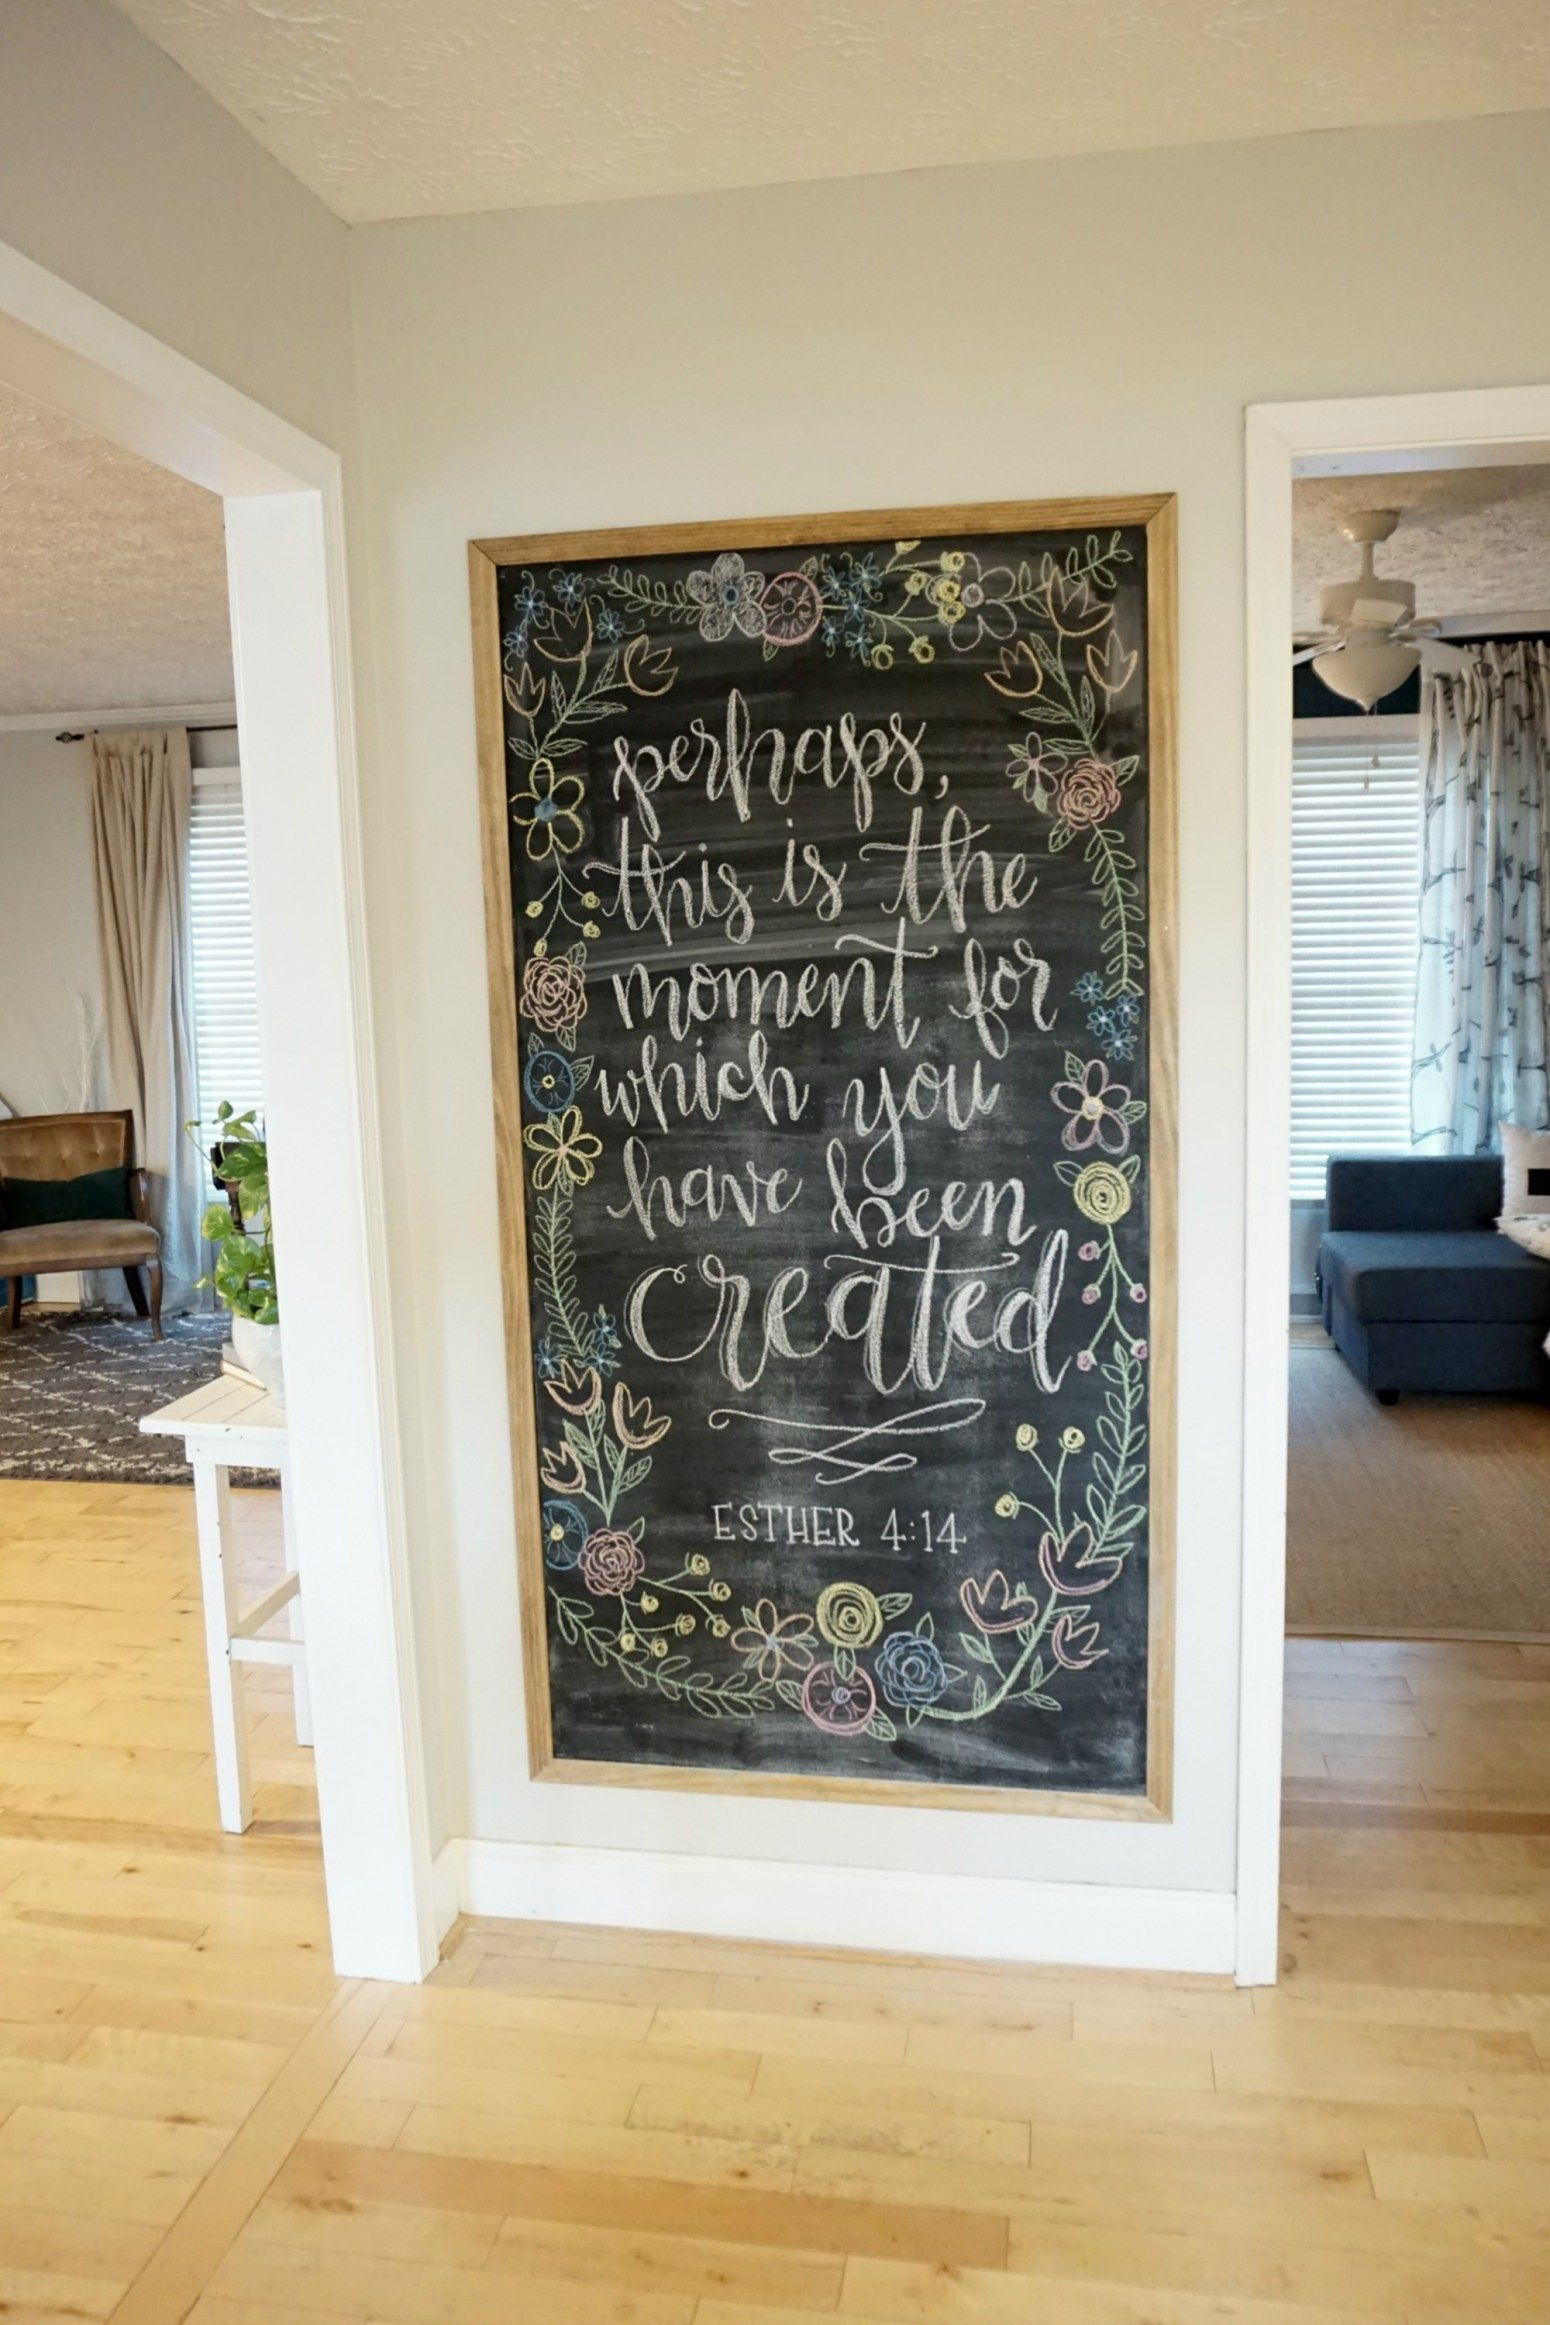 12 Affordable Ideas For Large Wall Decor Framed Magnetic Chalkboard Magnetic Chalkboard Diy Large Wall Decor